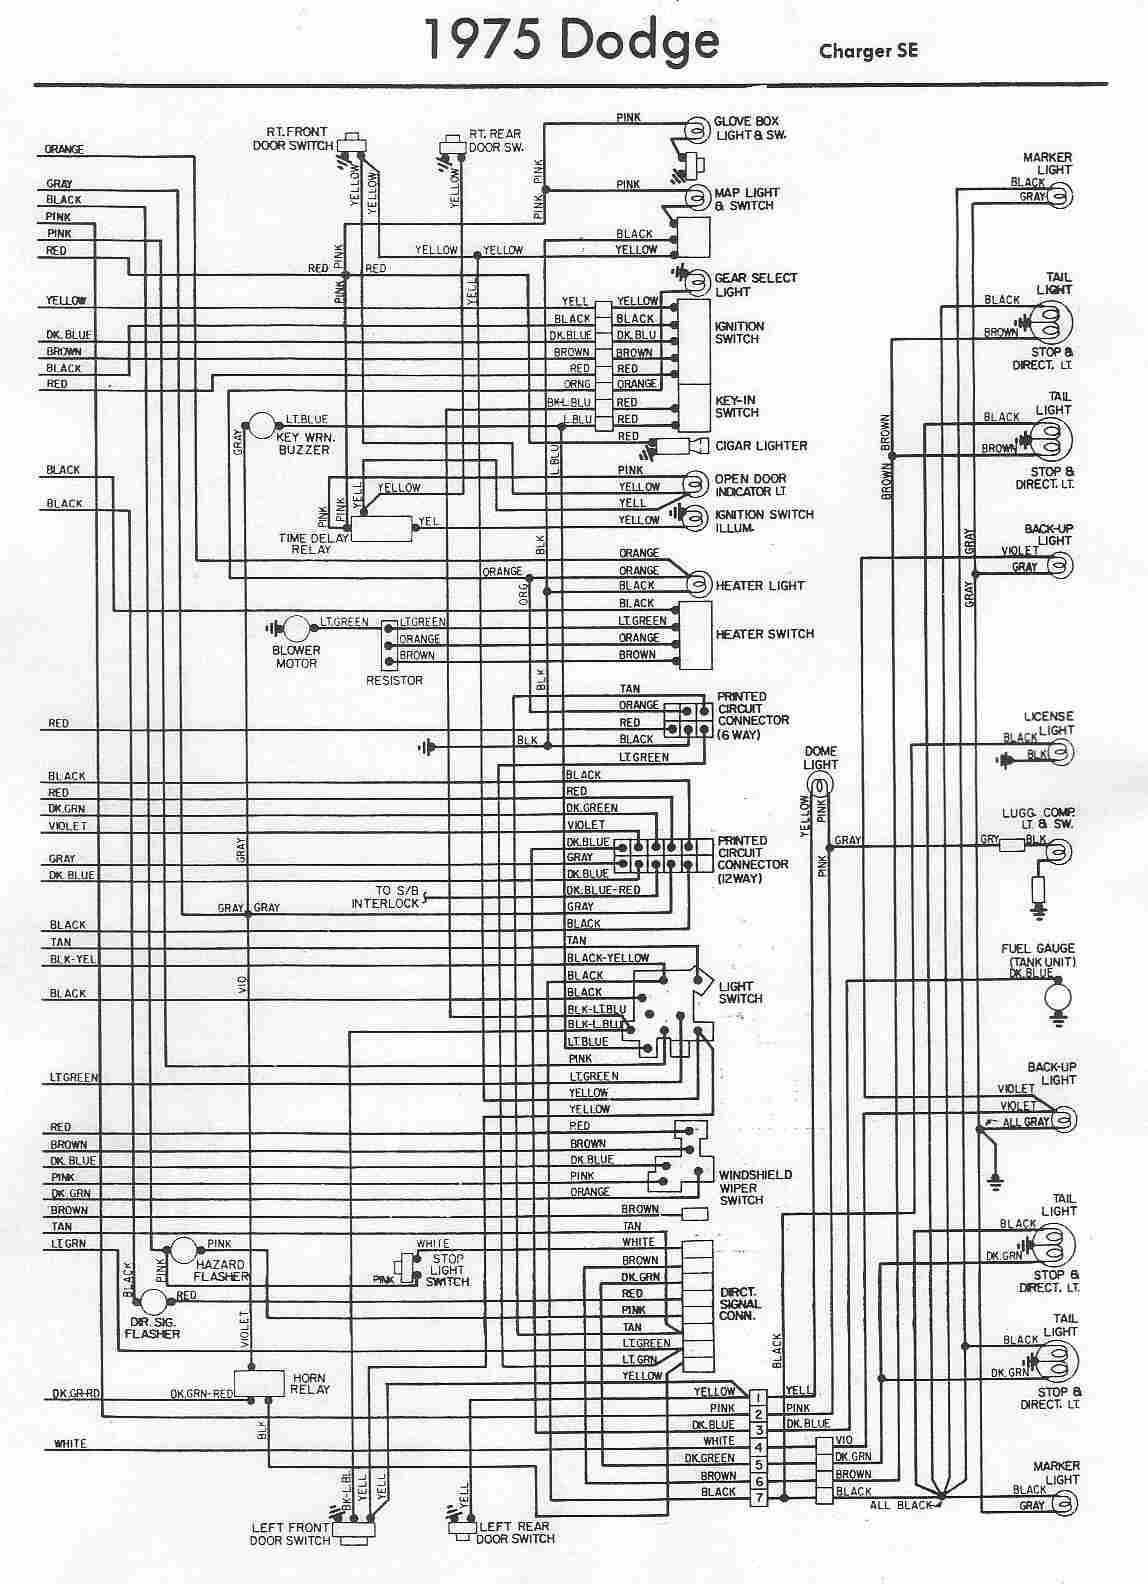 Dodge Car Manuals Wiring Diagrams Pdf Fault Codes 426 Hemi Engine Diagram Download